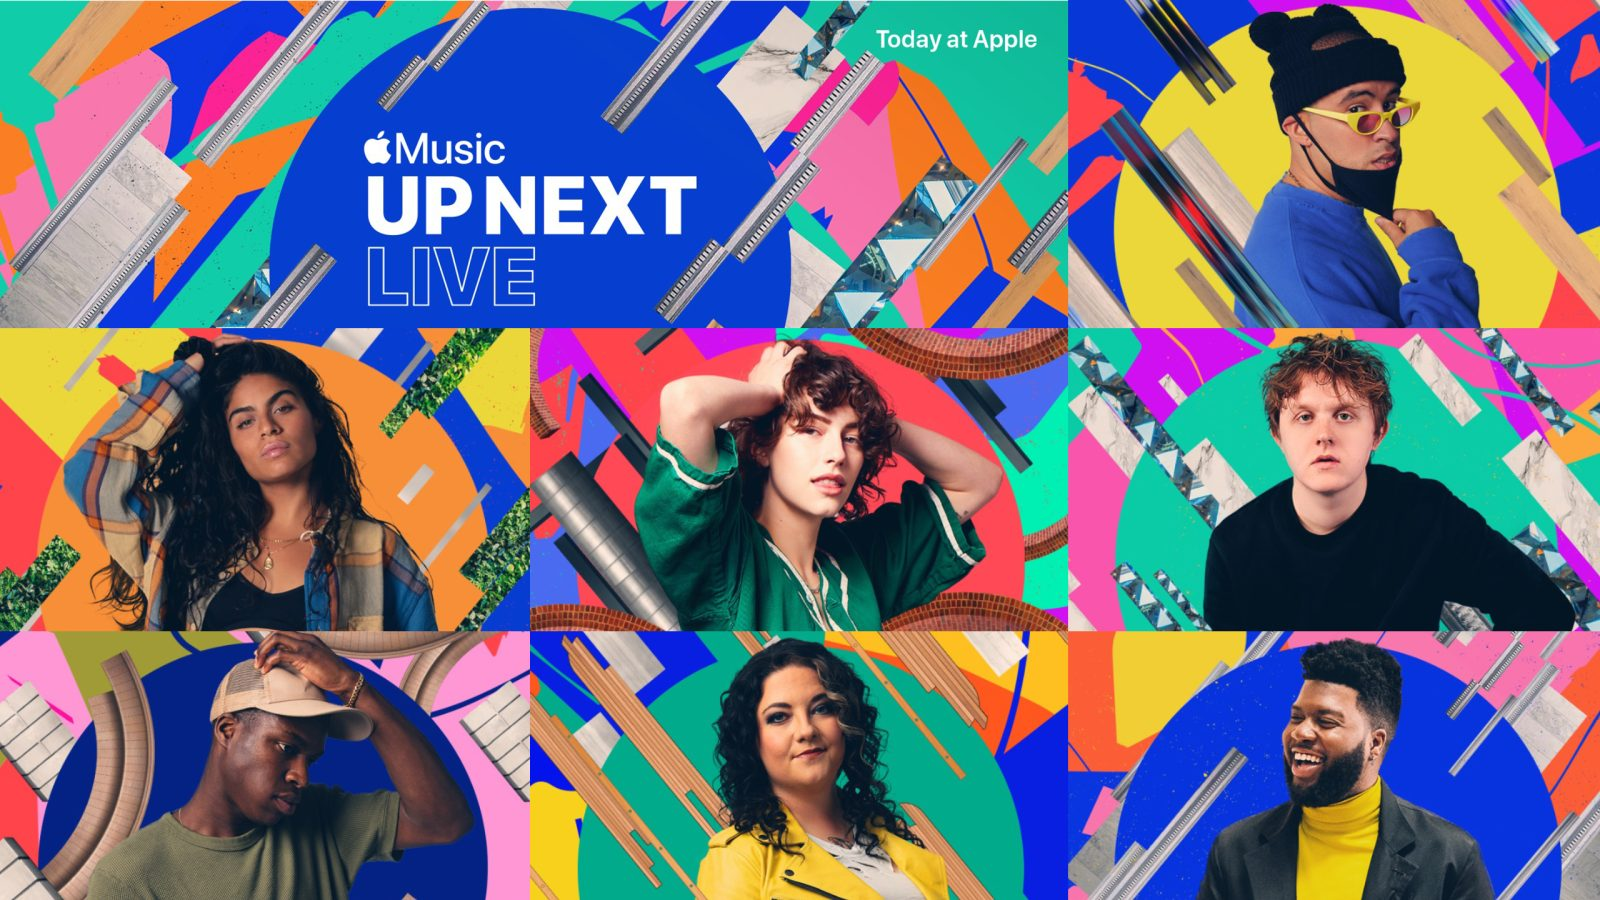 Apple Music Up Next concert tour bringing rising artists to top Apple Stores this summer